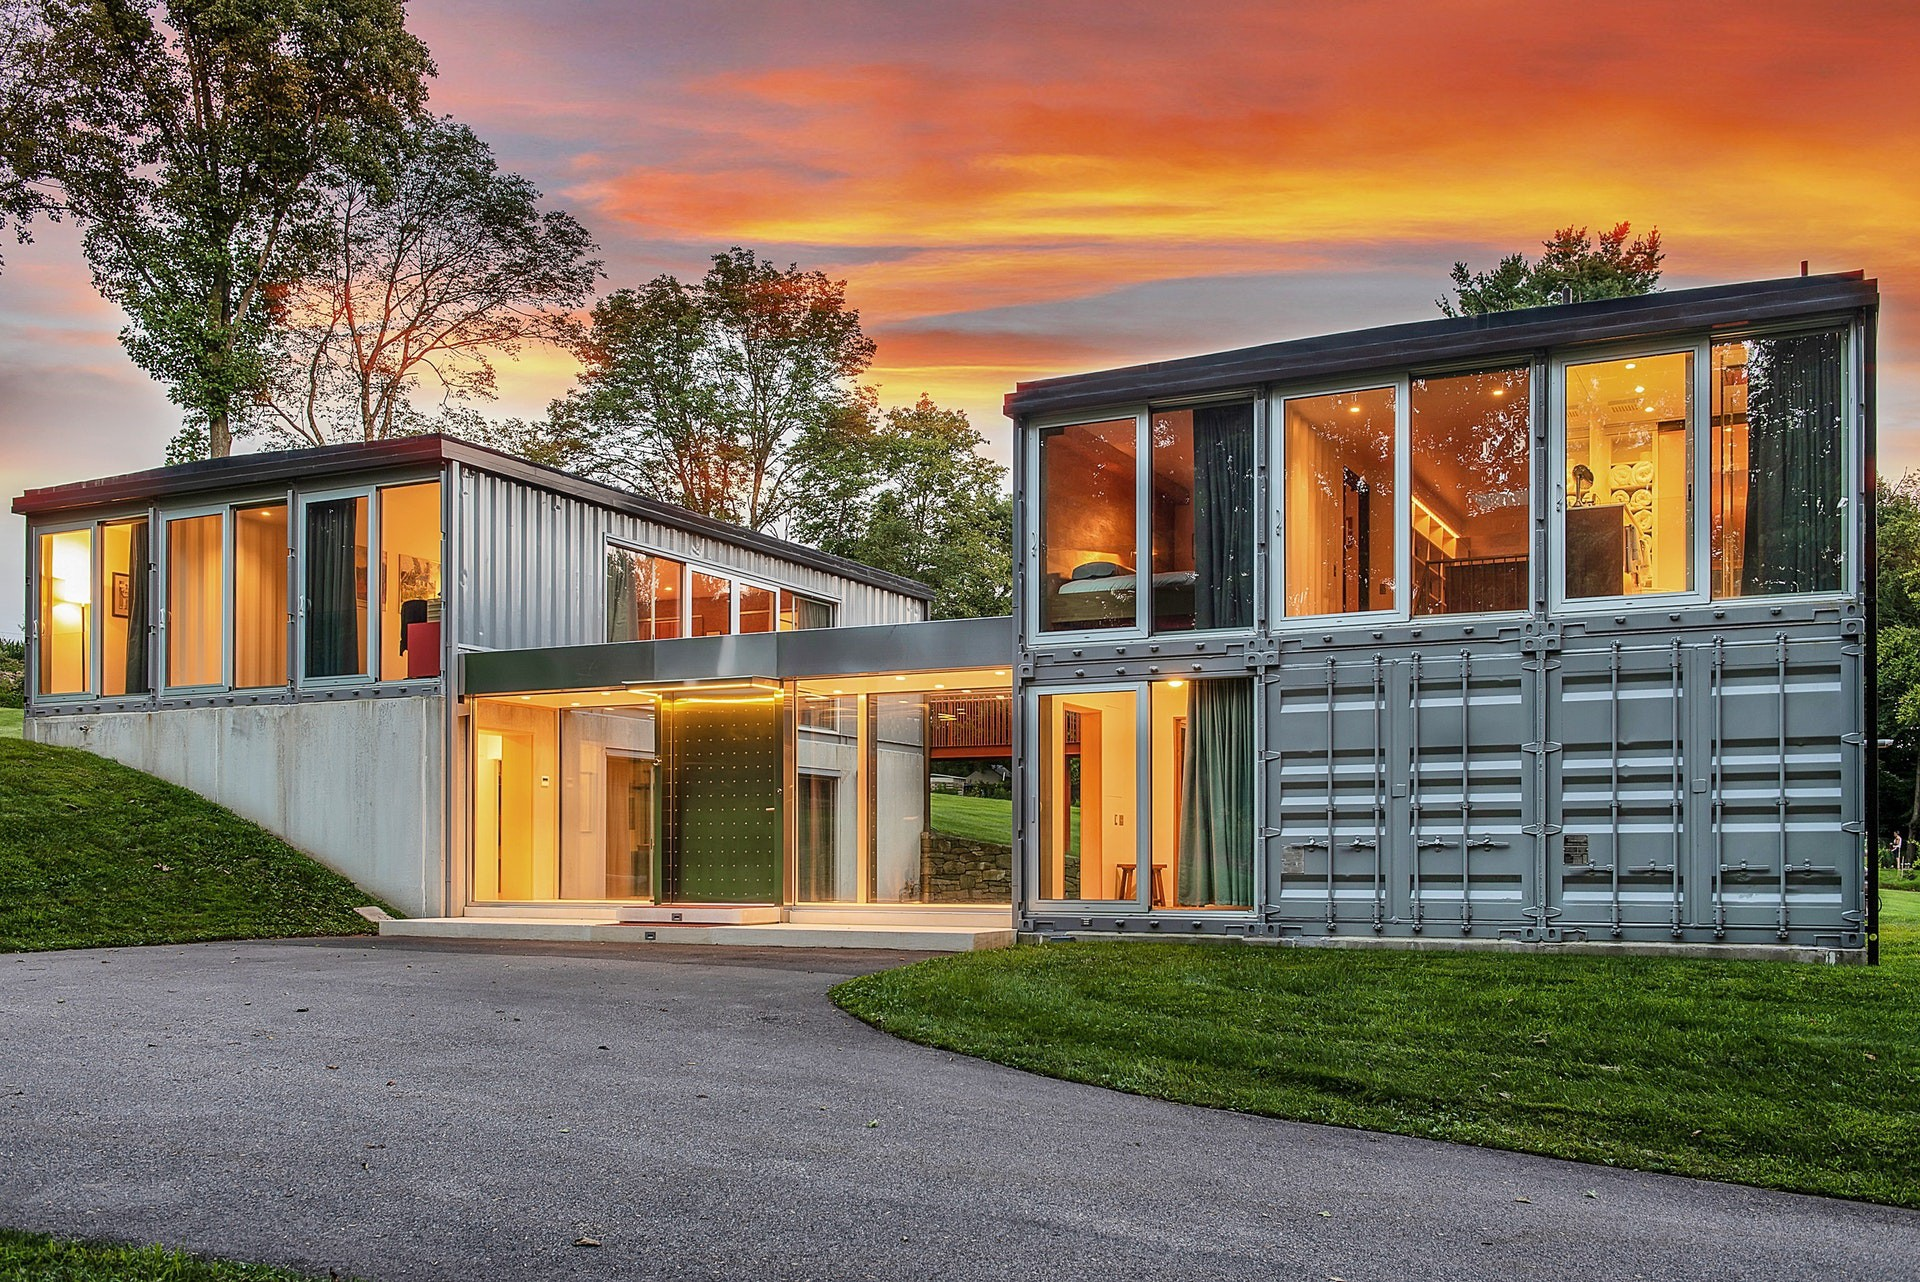 Modern Shipping Container Home this jaw-dropping shipping container home by renowned